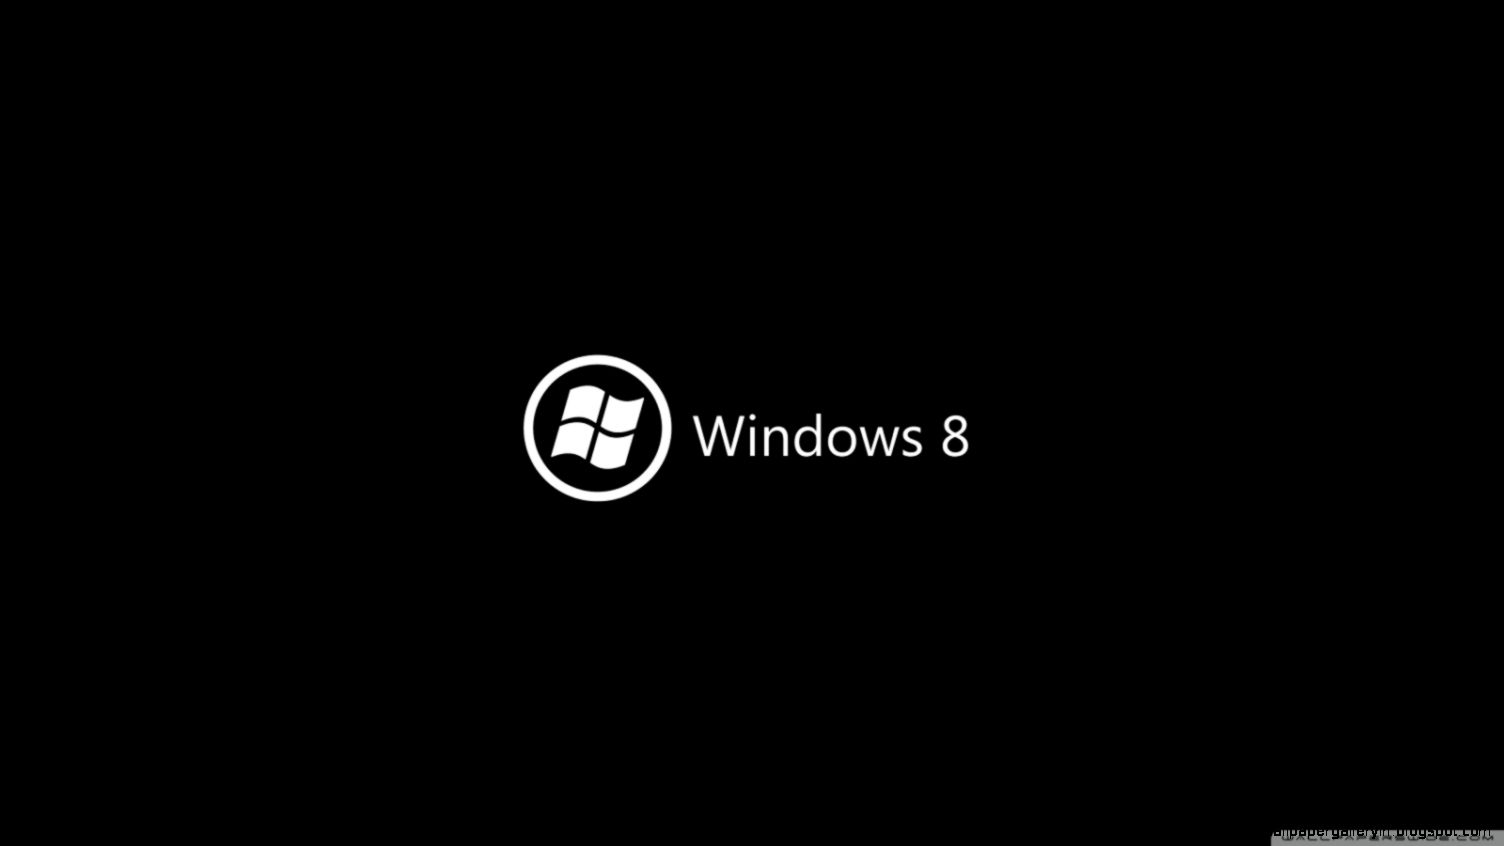 Windows 8 On Black HD desktop wallpaper  High Definition